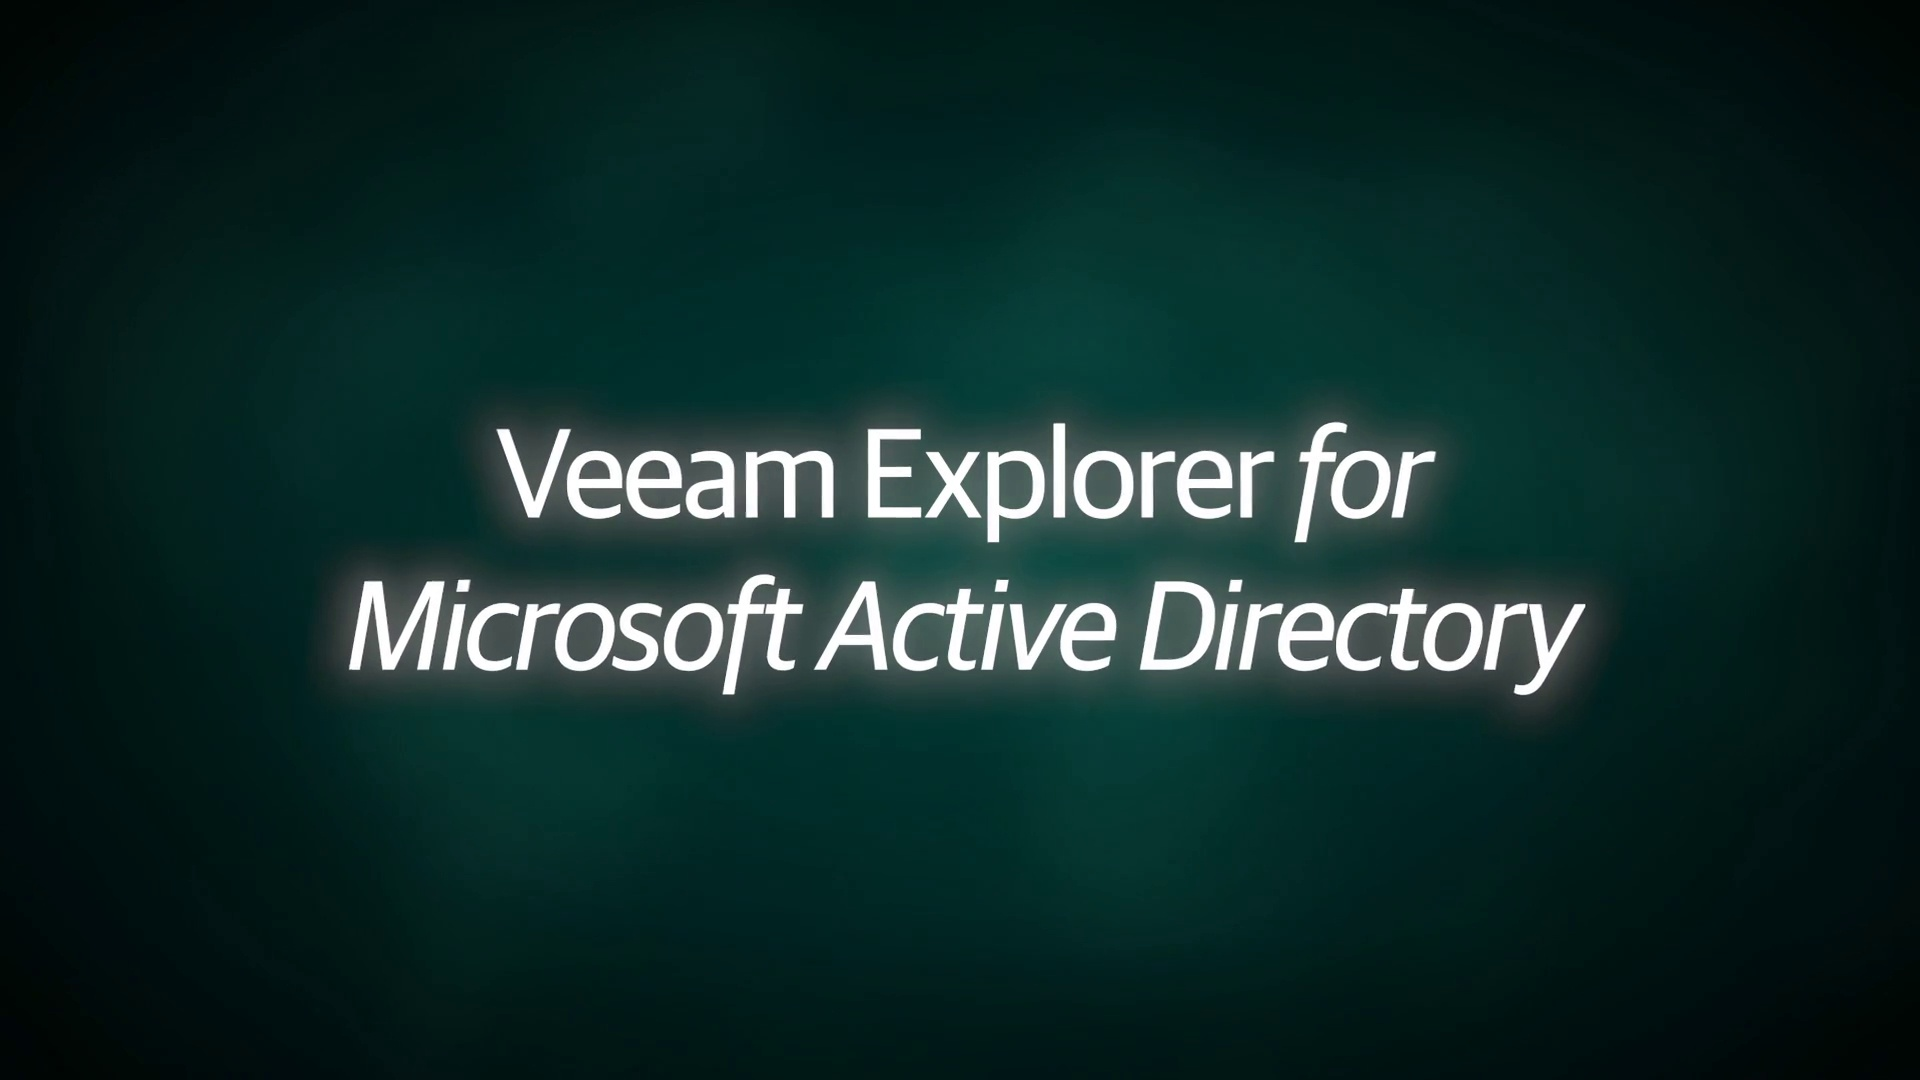 Veeam Explorer for Microsoft Active Directory